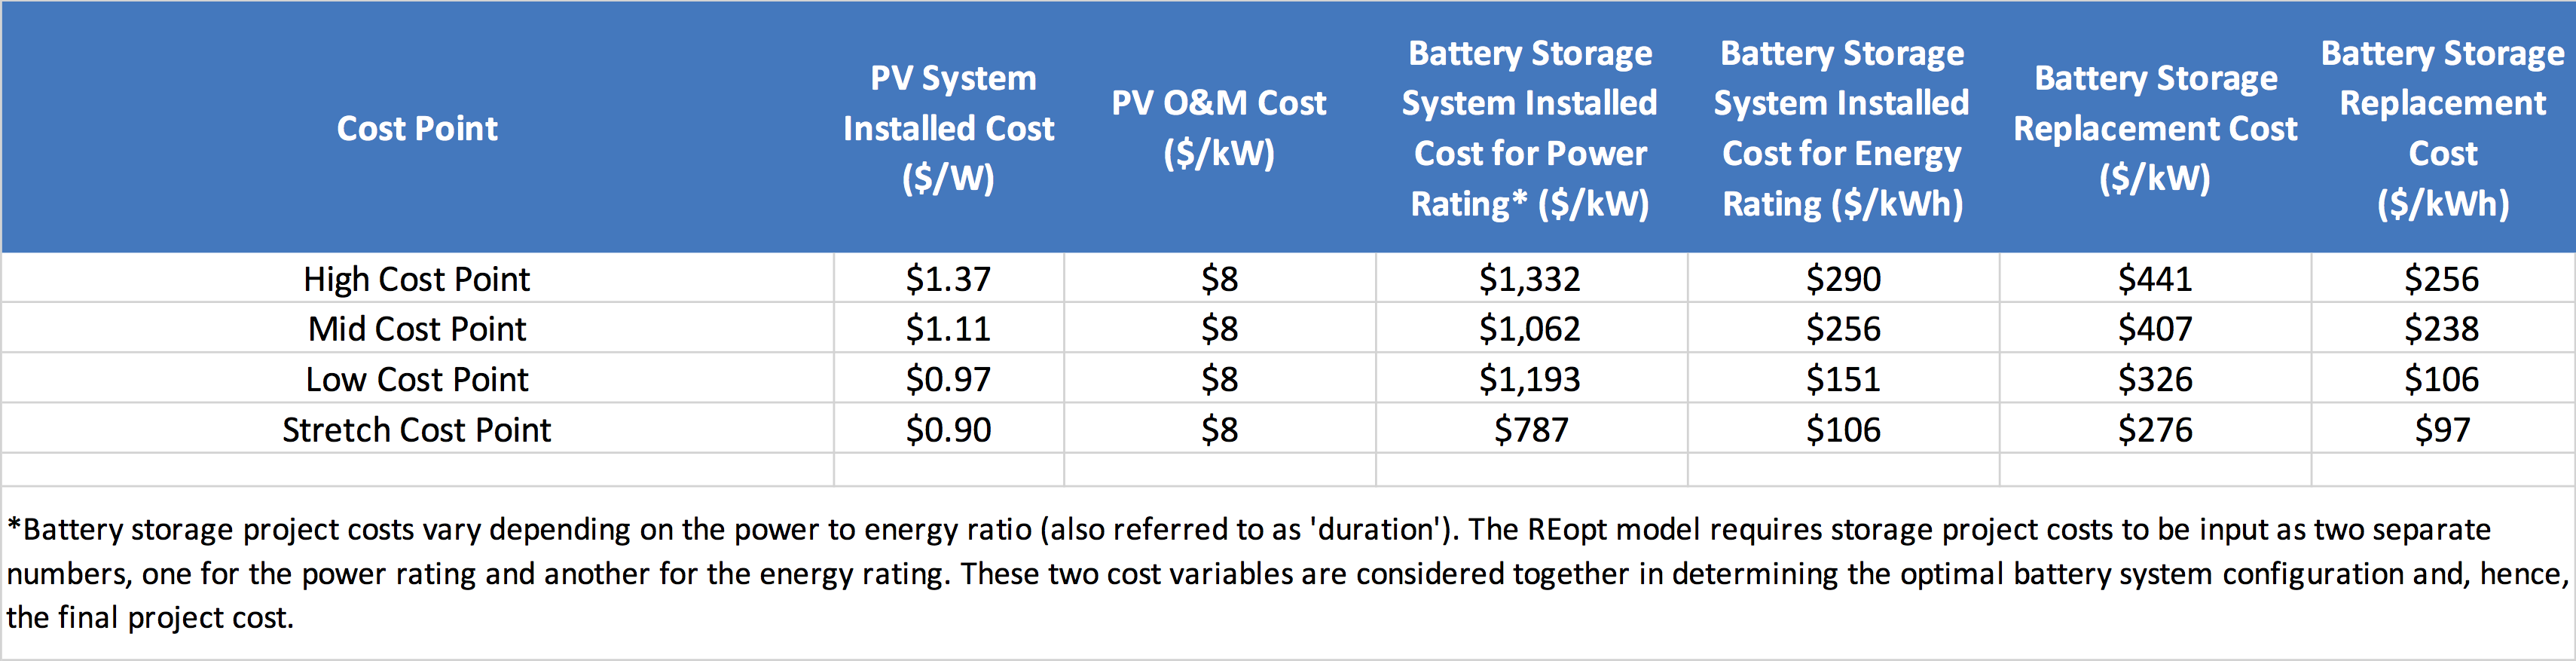 Solar and Battery Storage Cost Assumptions used for Optimization Modeling